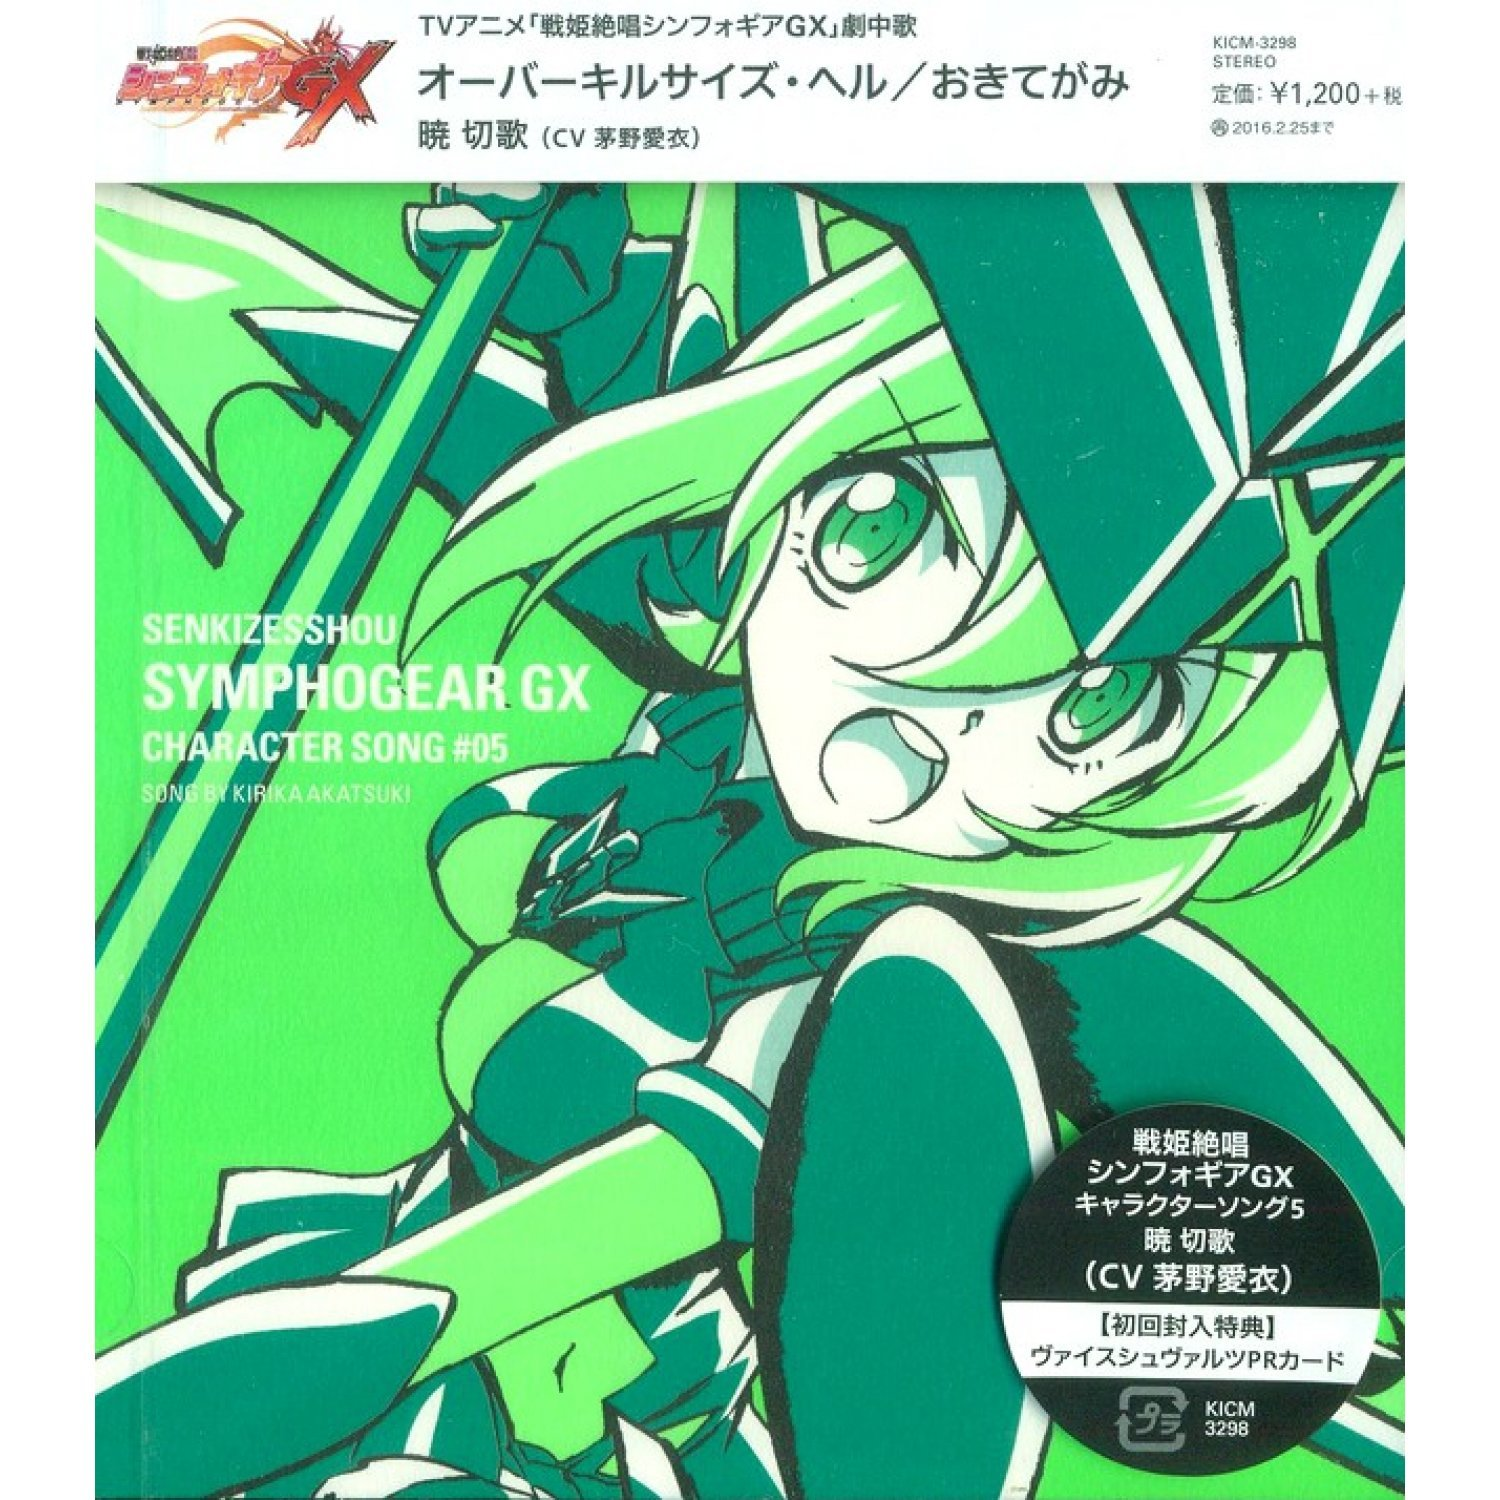 Symphogear Gx Character Song Vol 5